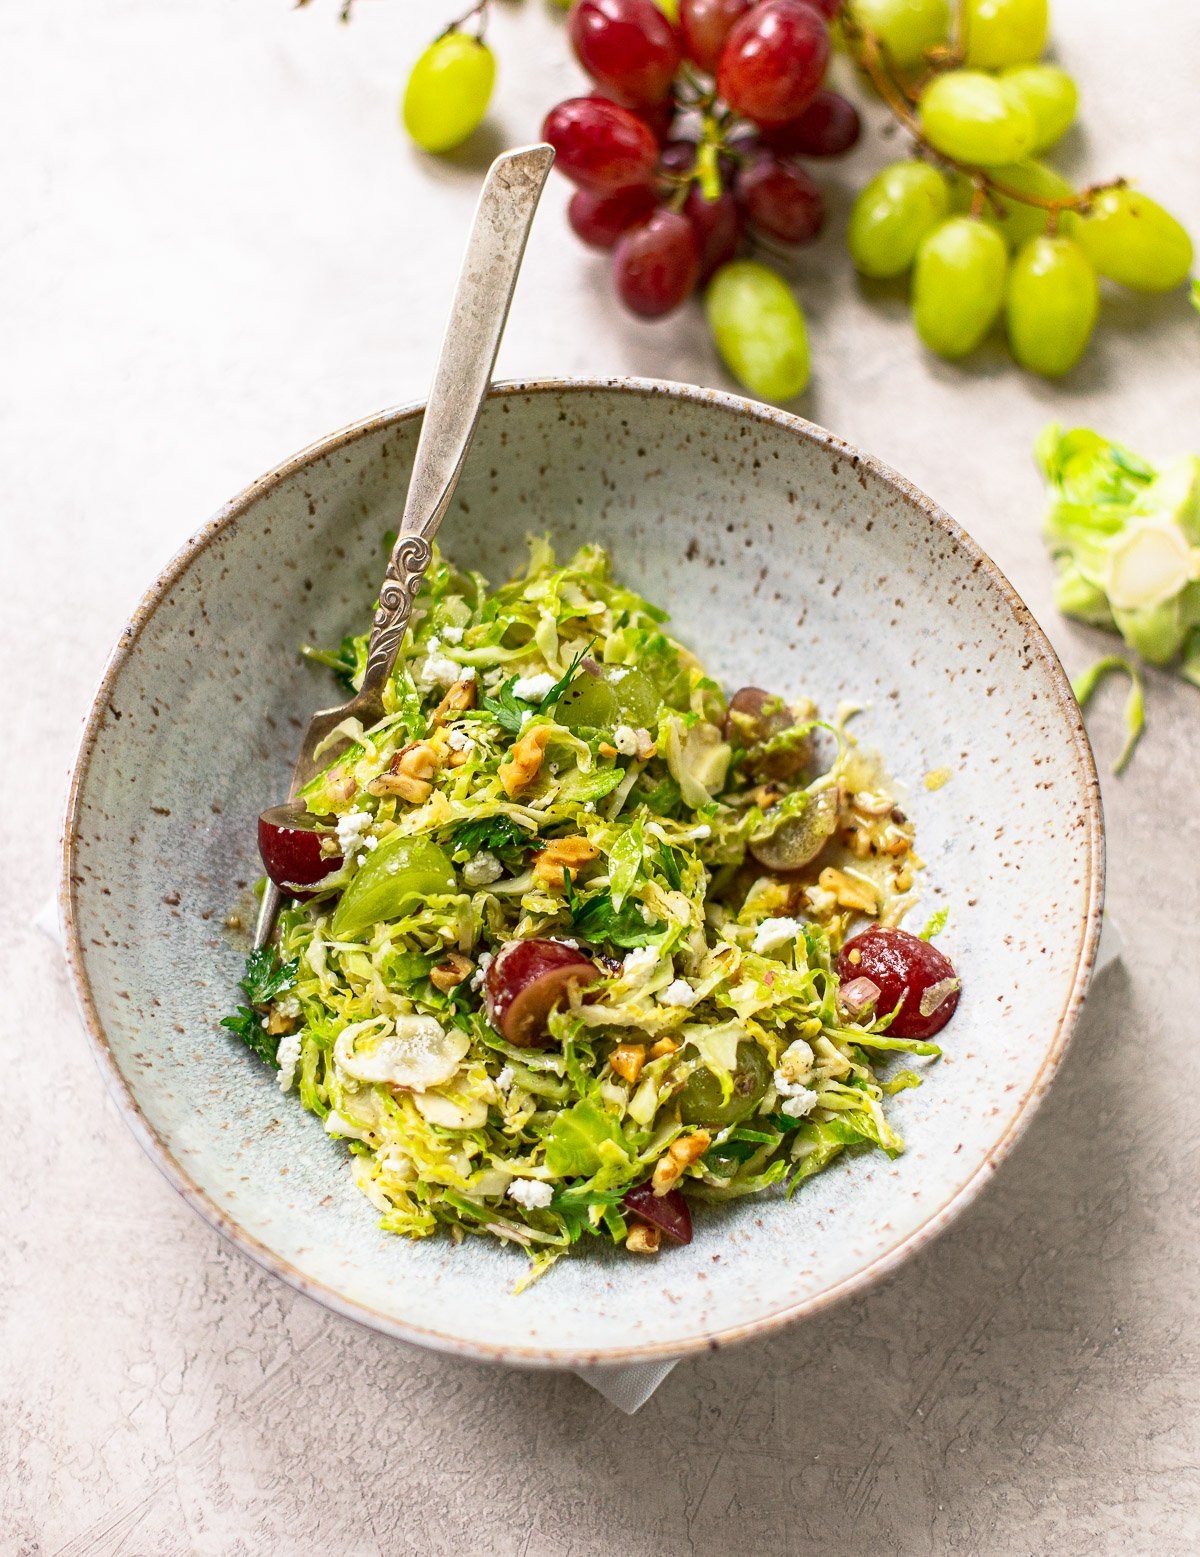 A photo of a gray speckled bowl with shaved brussles sprouts salad with red grapes and a fork on the side.